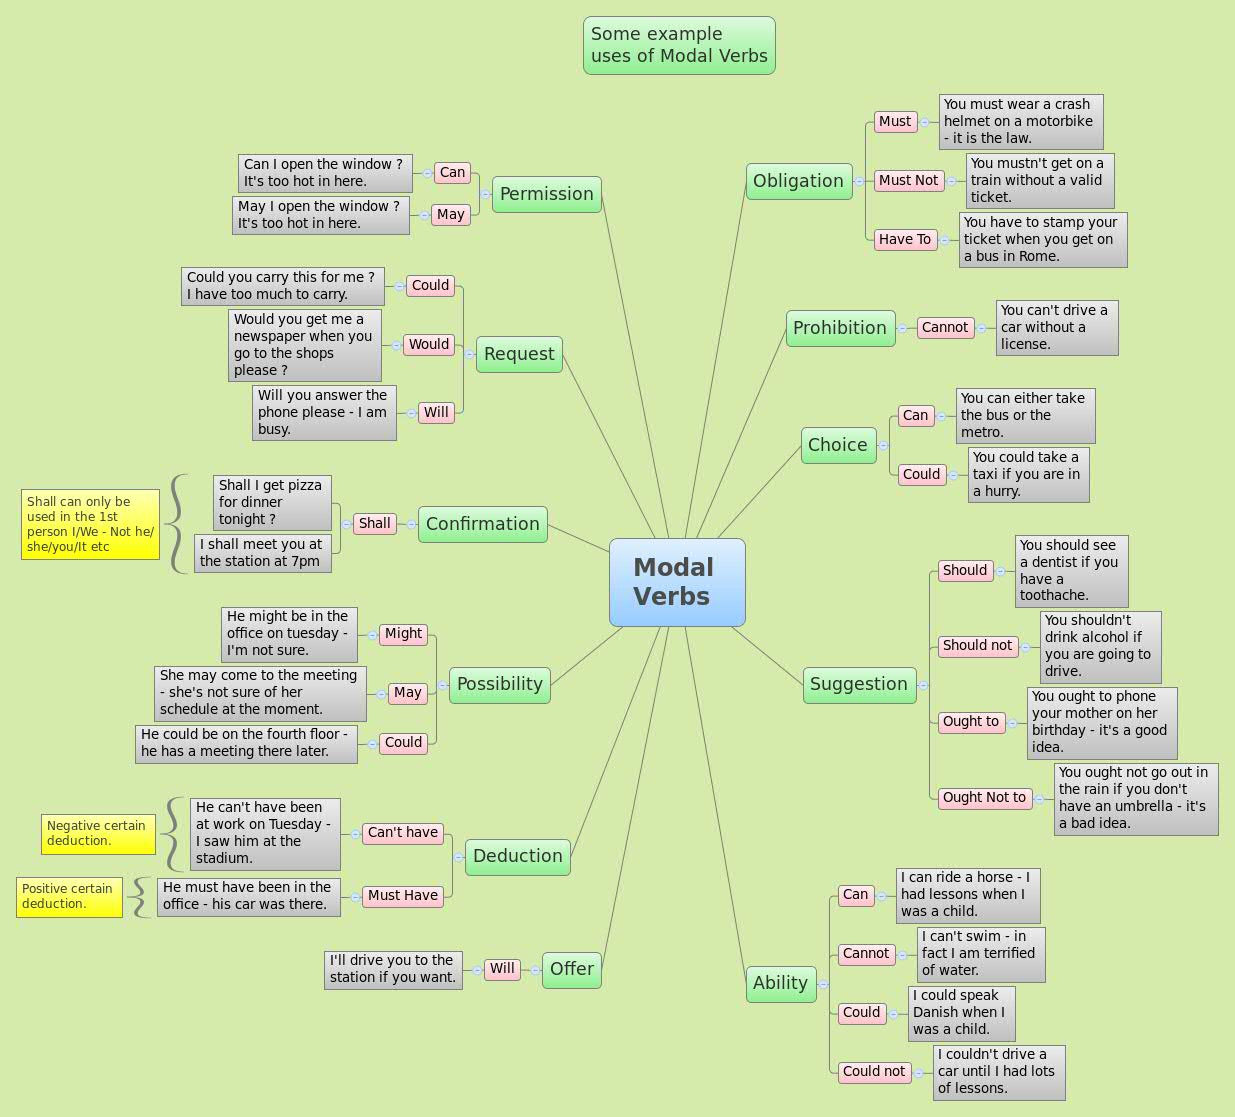 Modal Verbs Images